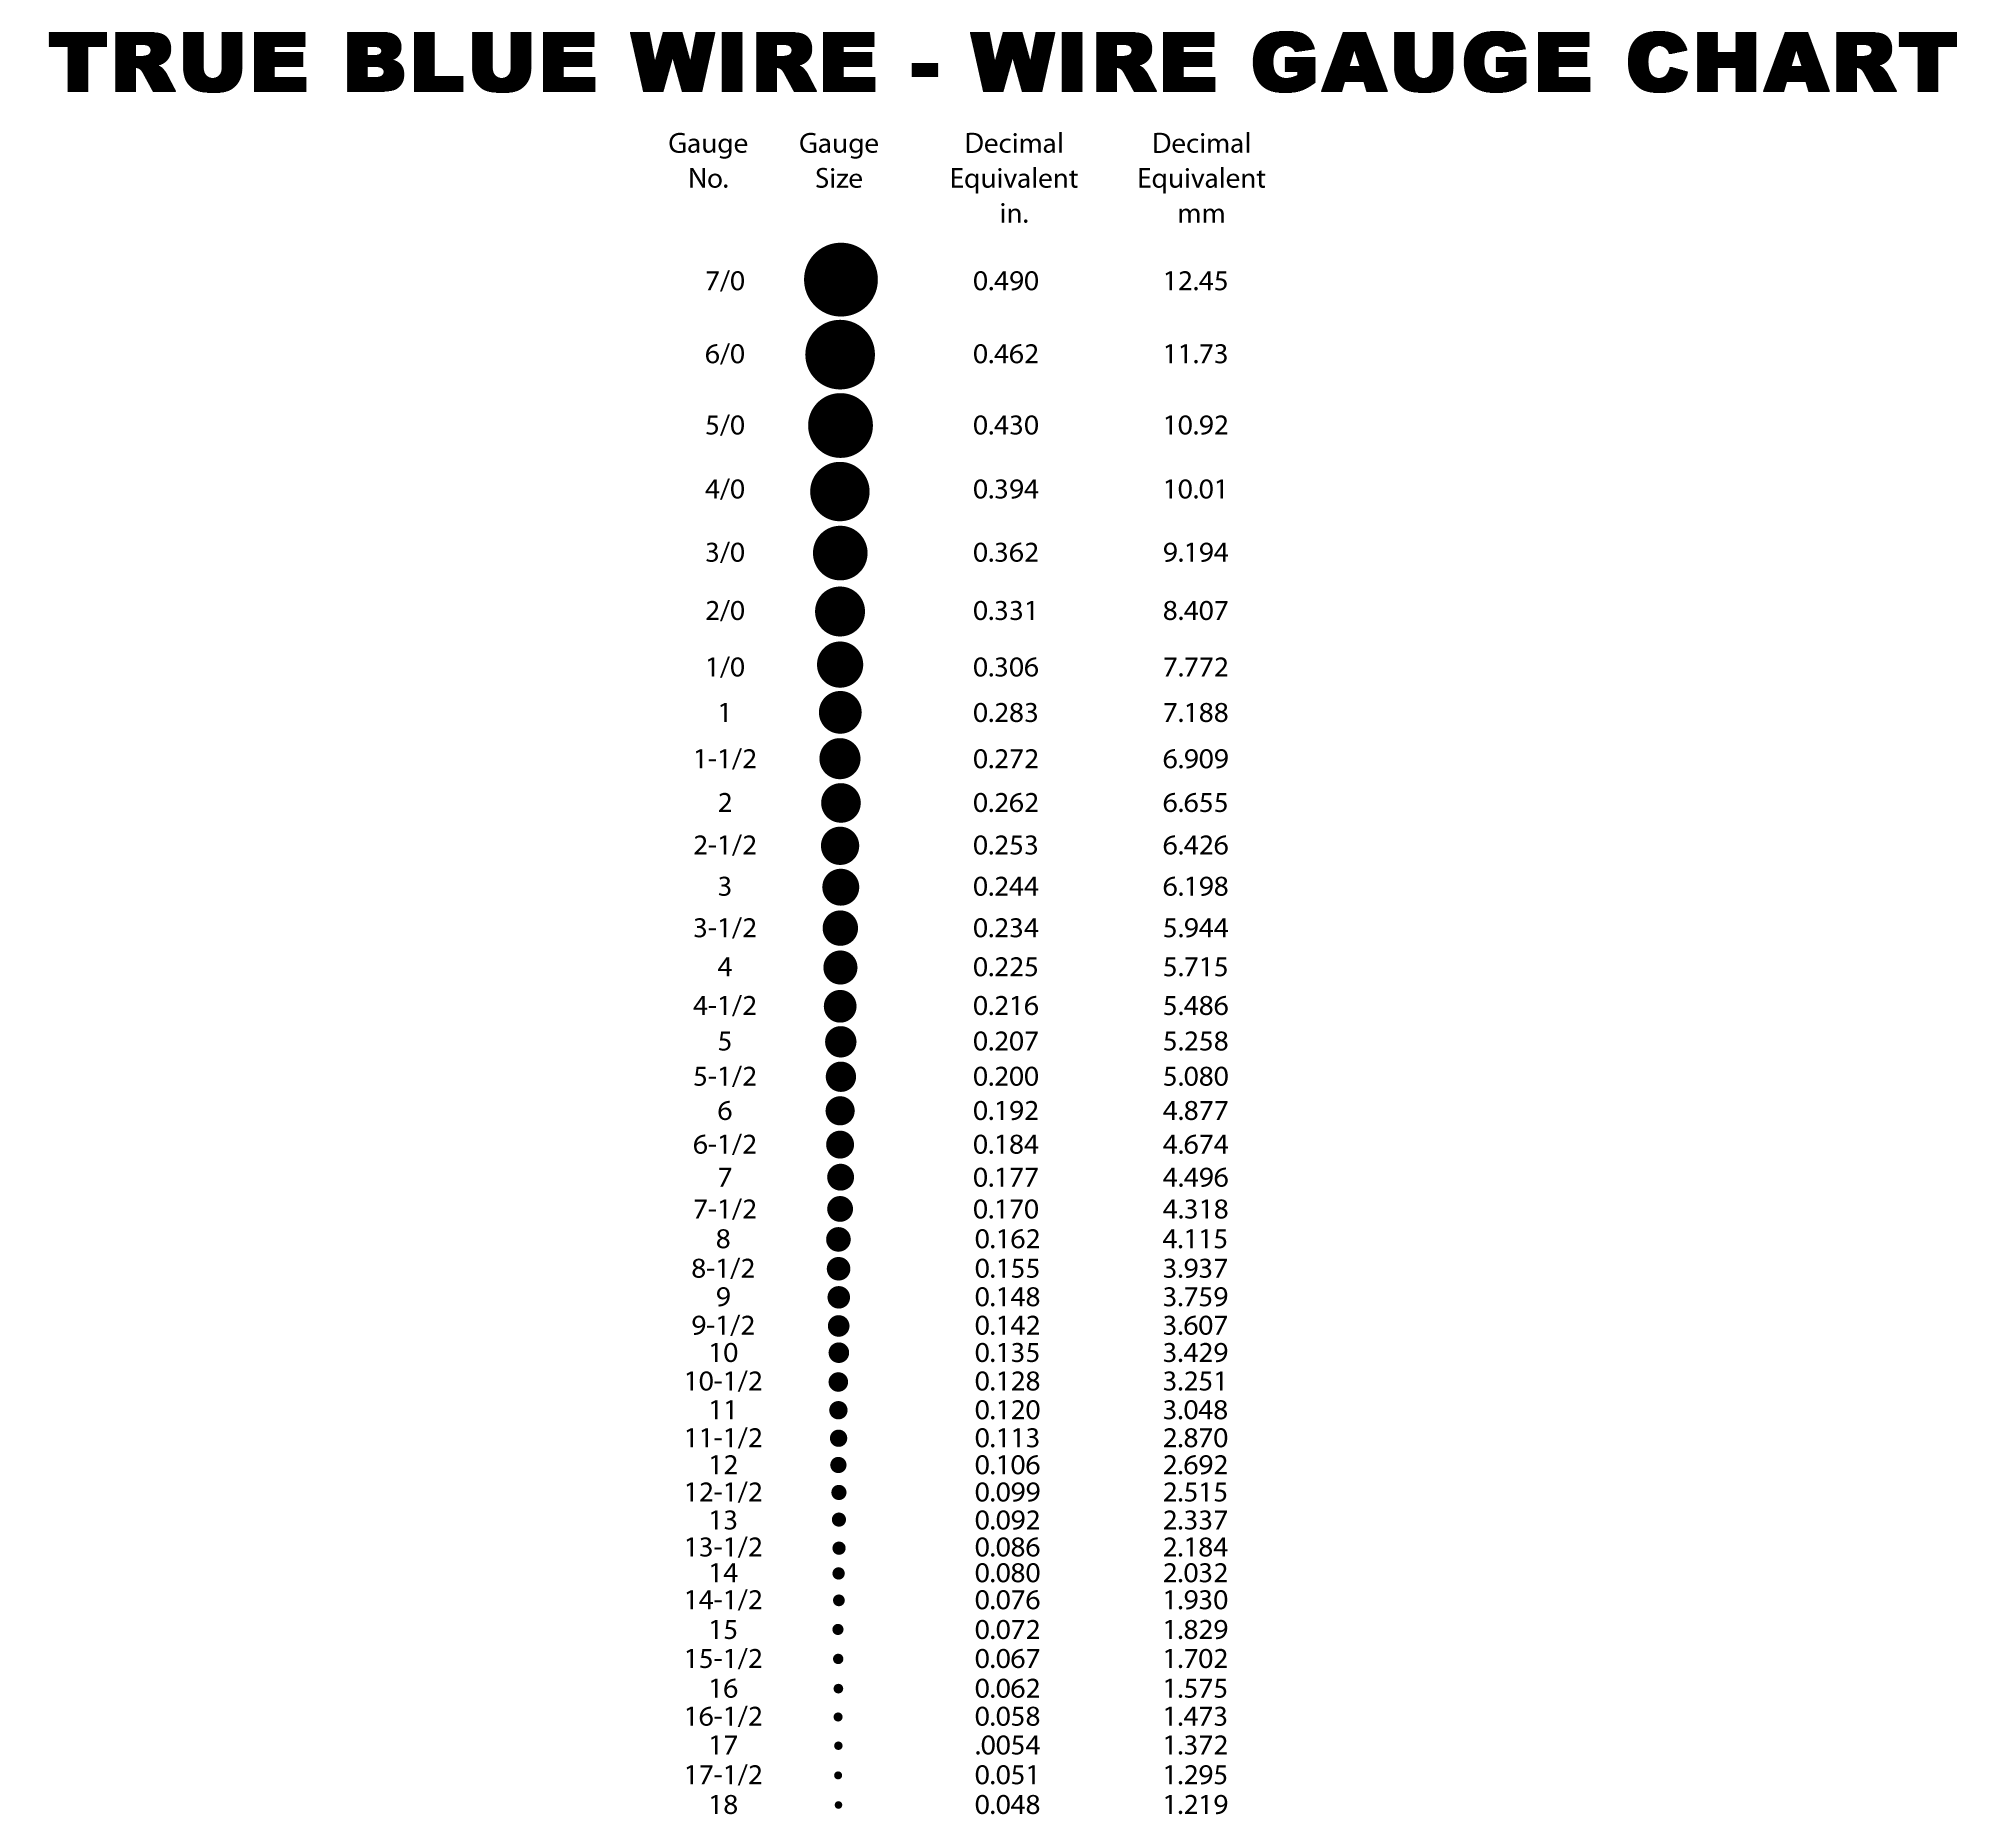 Gauge wire chart dolapgnetband gauge wire chart keyboard keysfo Images